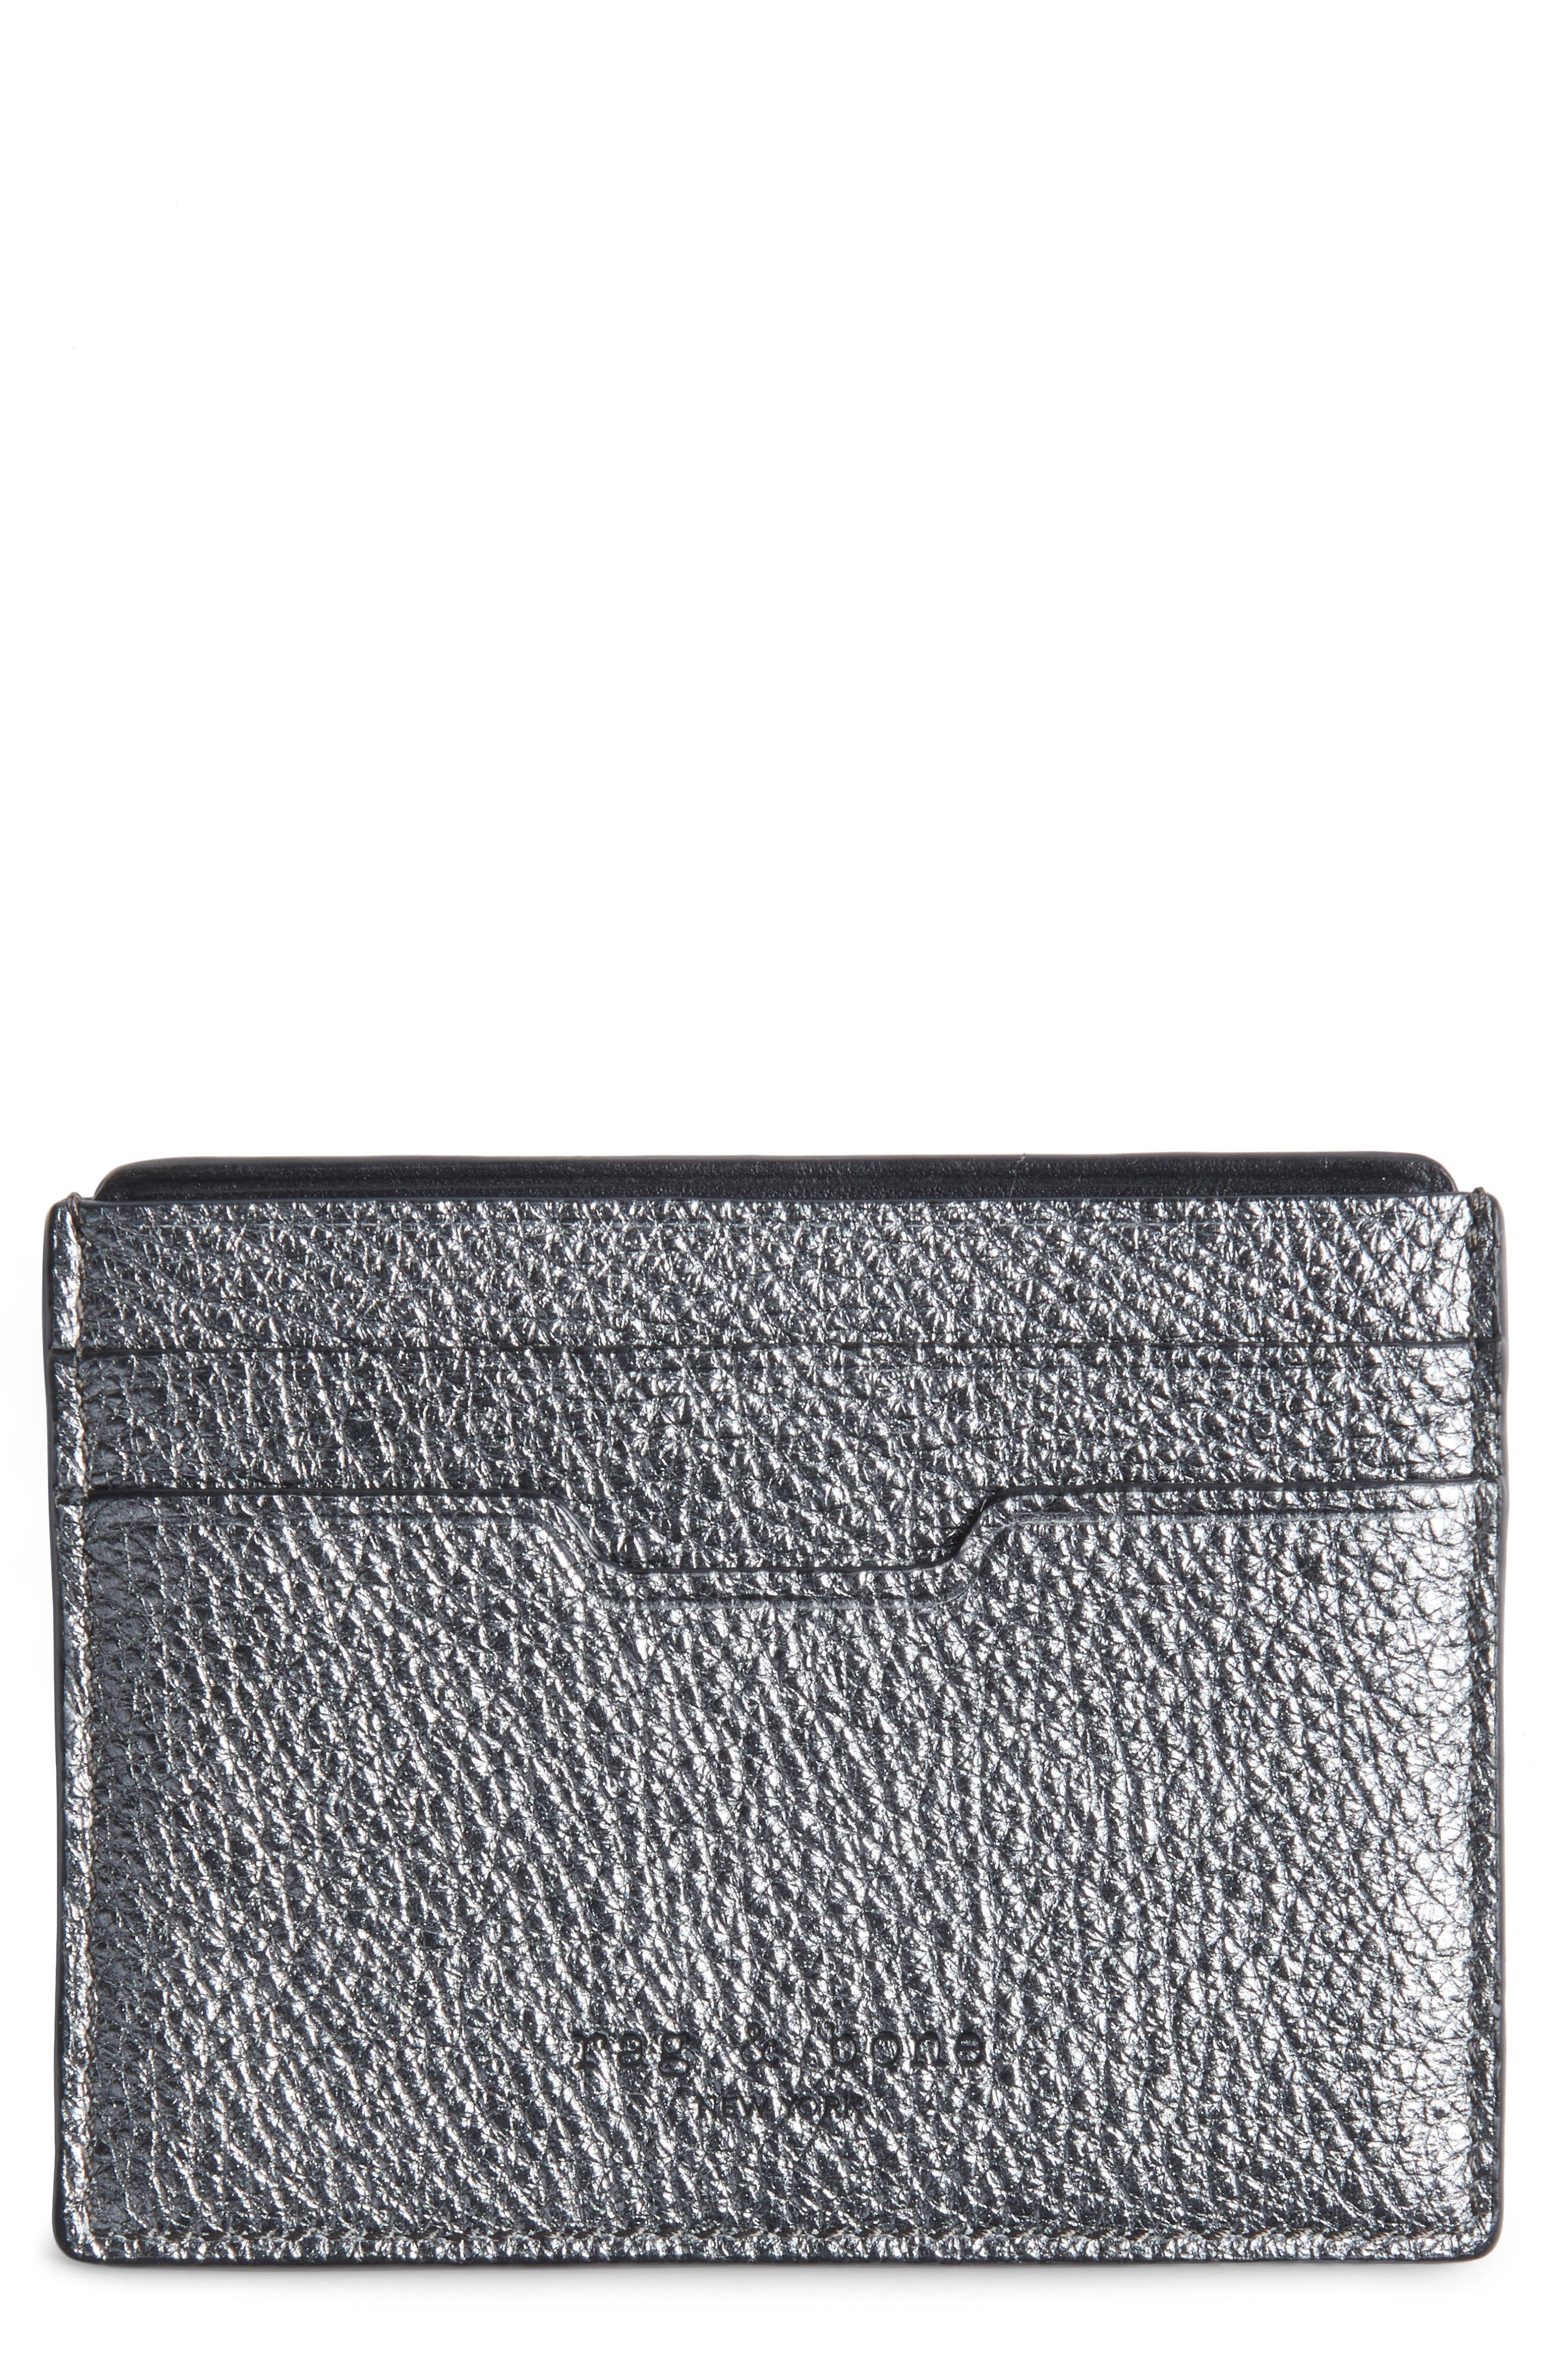 rag & bone Textured Buffalo Leather Card Case